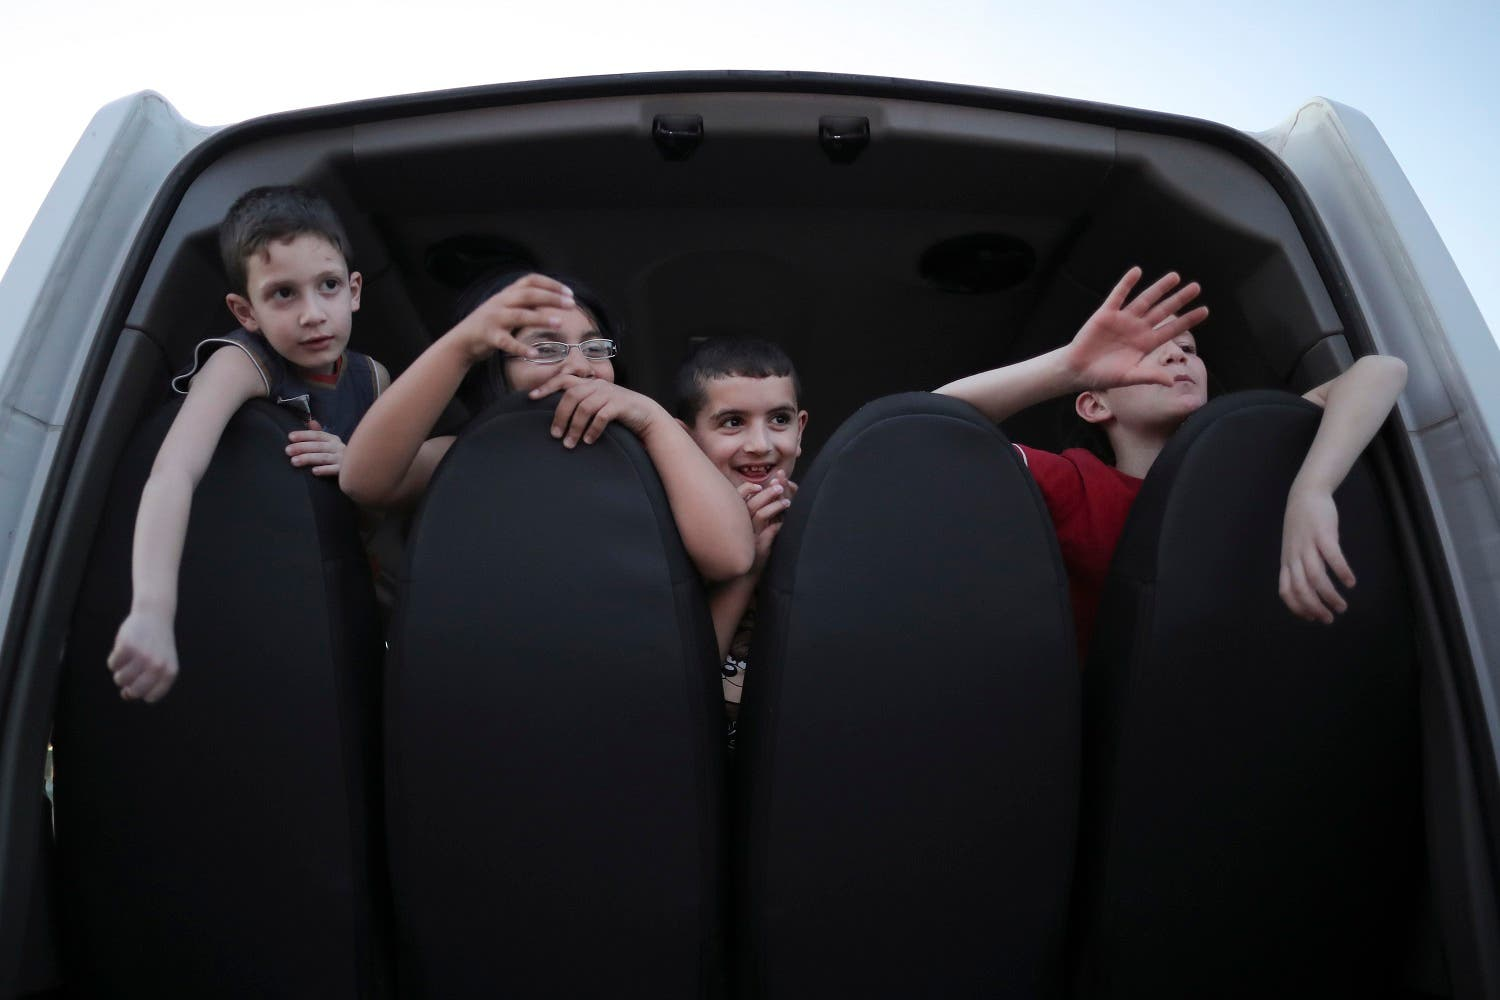 More Syrian migrants are expected to arrive in the province in the coming months, said Liliana Scheines, who oversees the San Luis migrant committee. (AP)